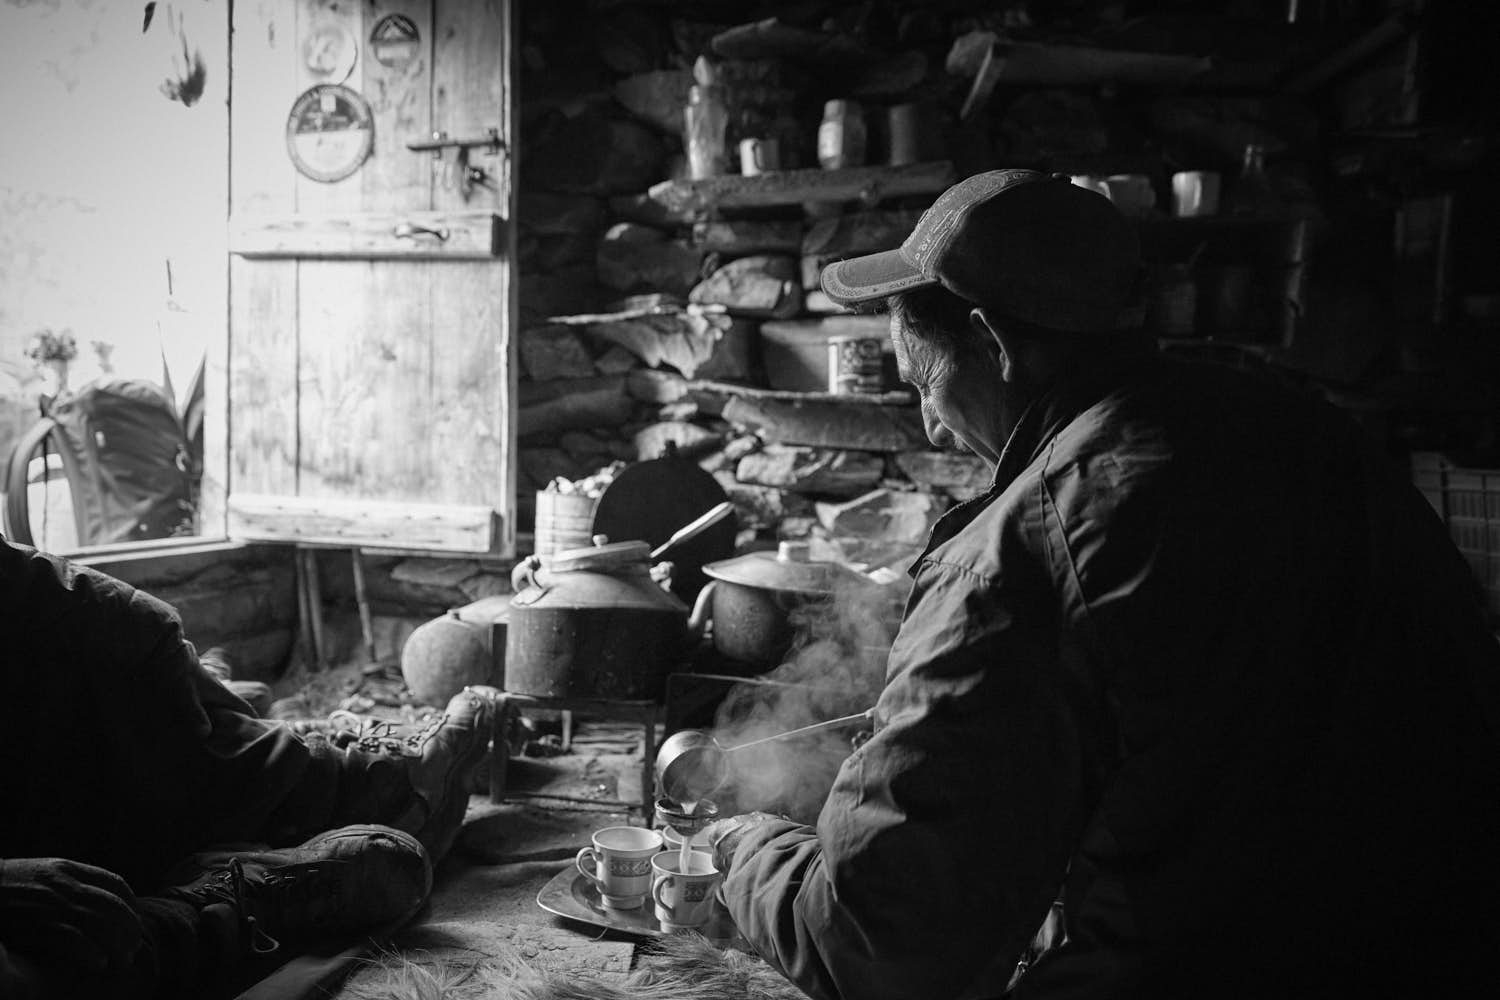 A man wearing a baseball cap serving tea in a rustic hut. Black and white photography.